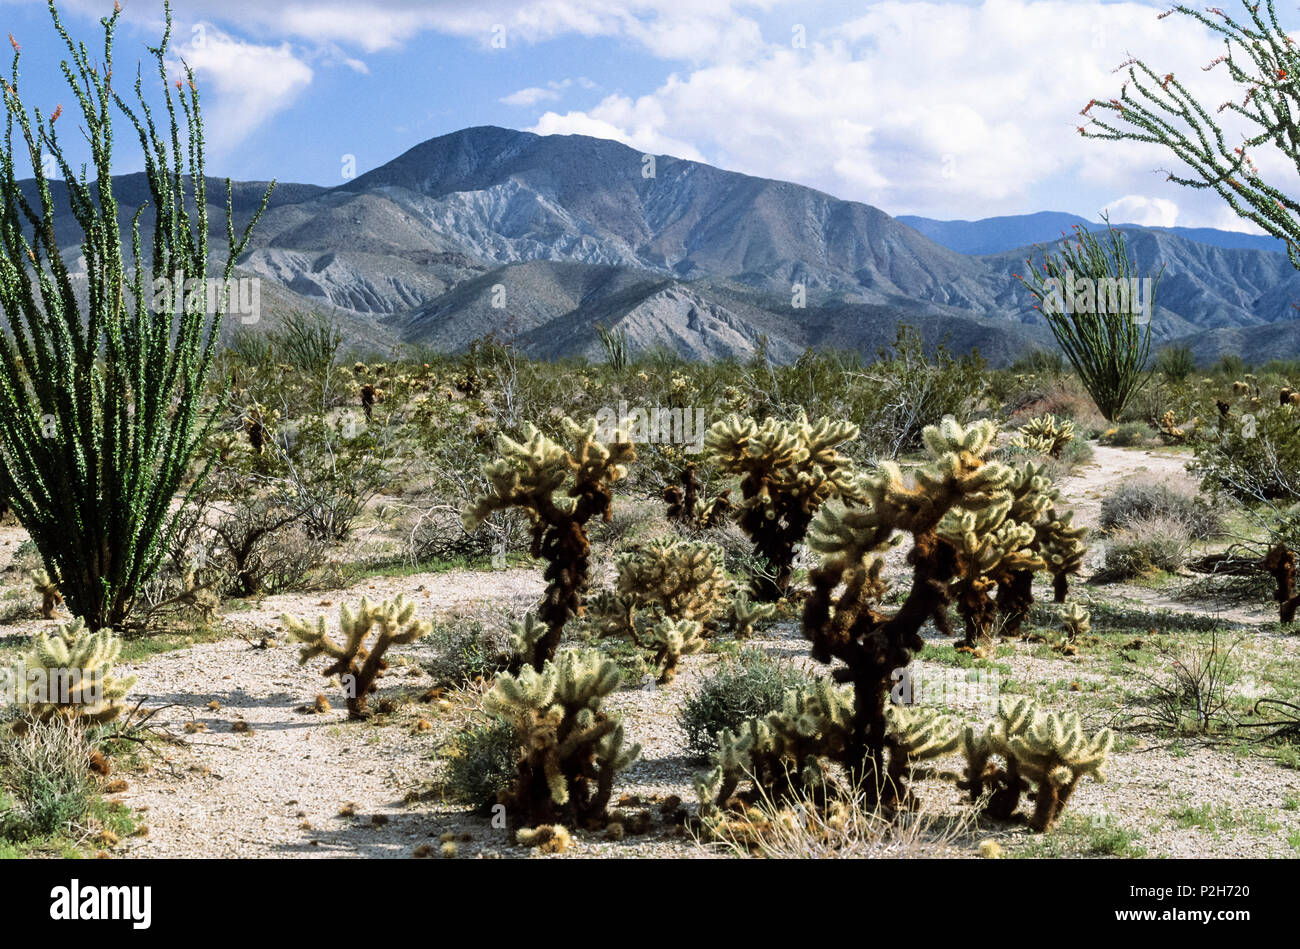 Anza-Borego Desert State Park, Kalifronien, USA - Stock Image